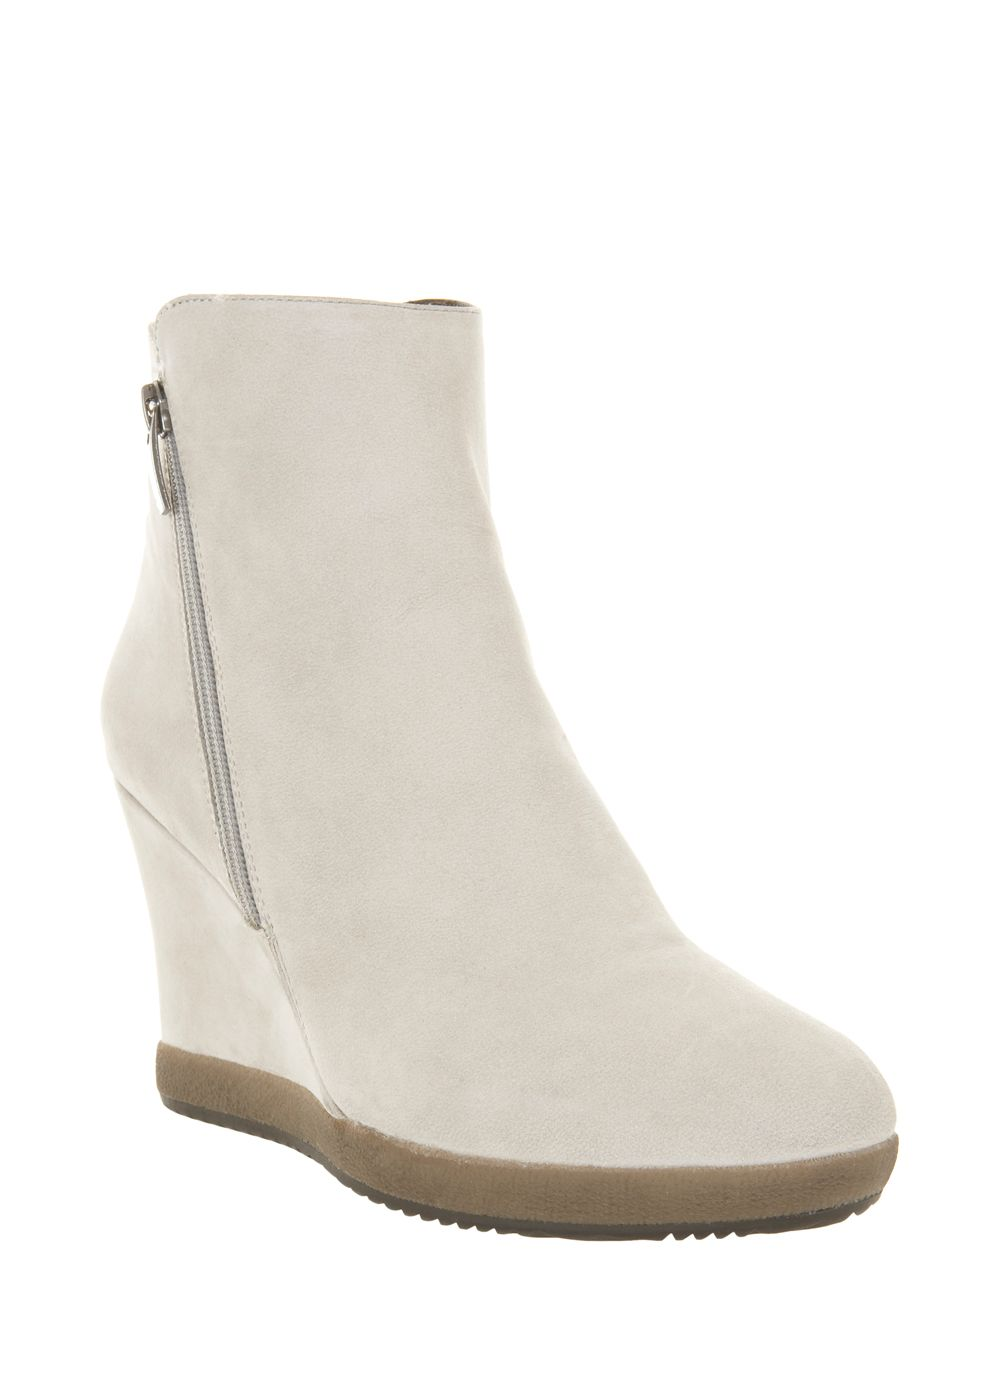 Stone suede wedge zip boots